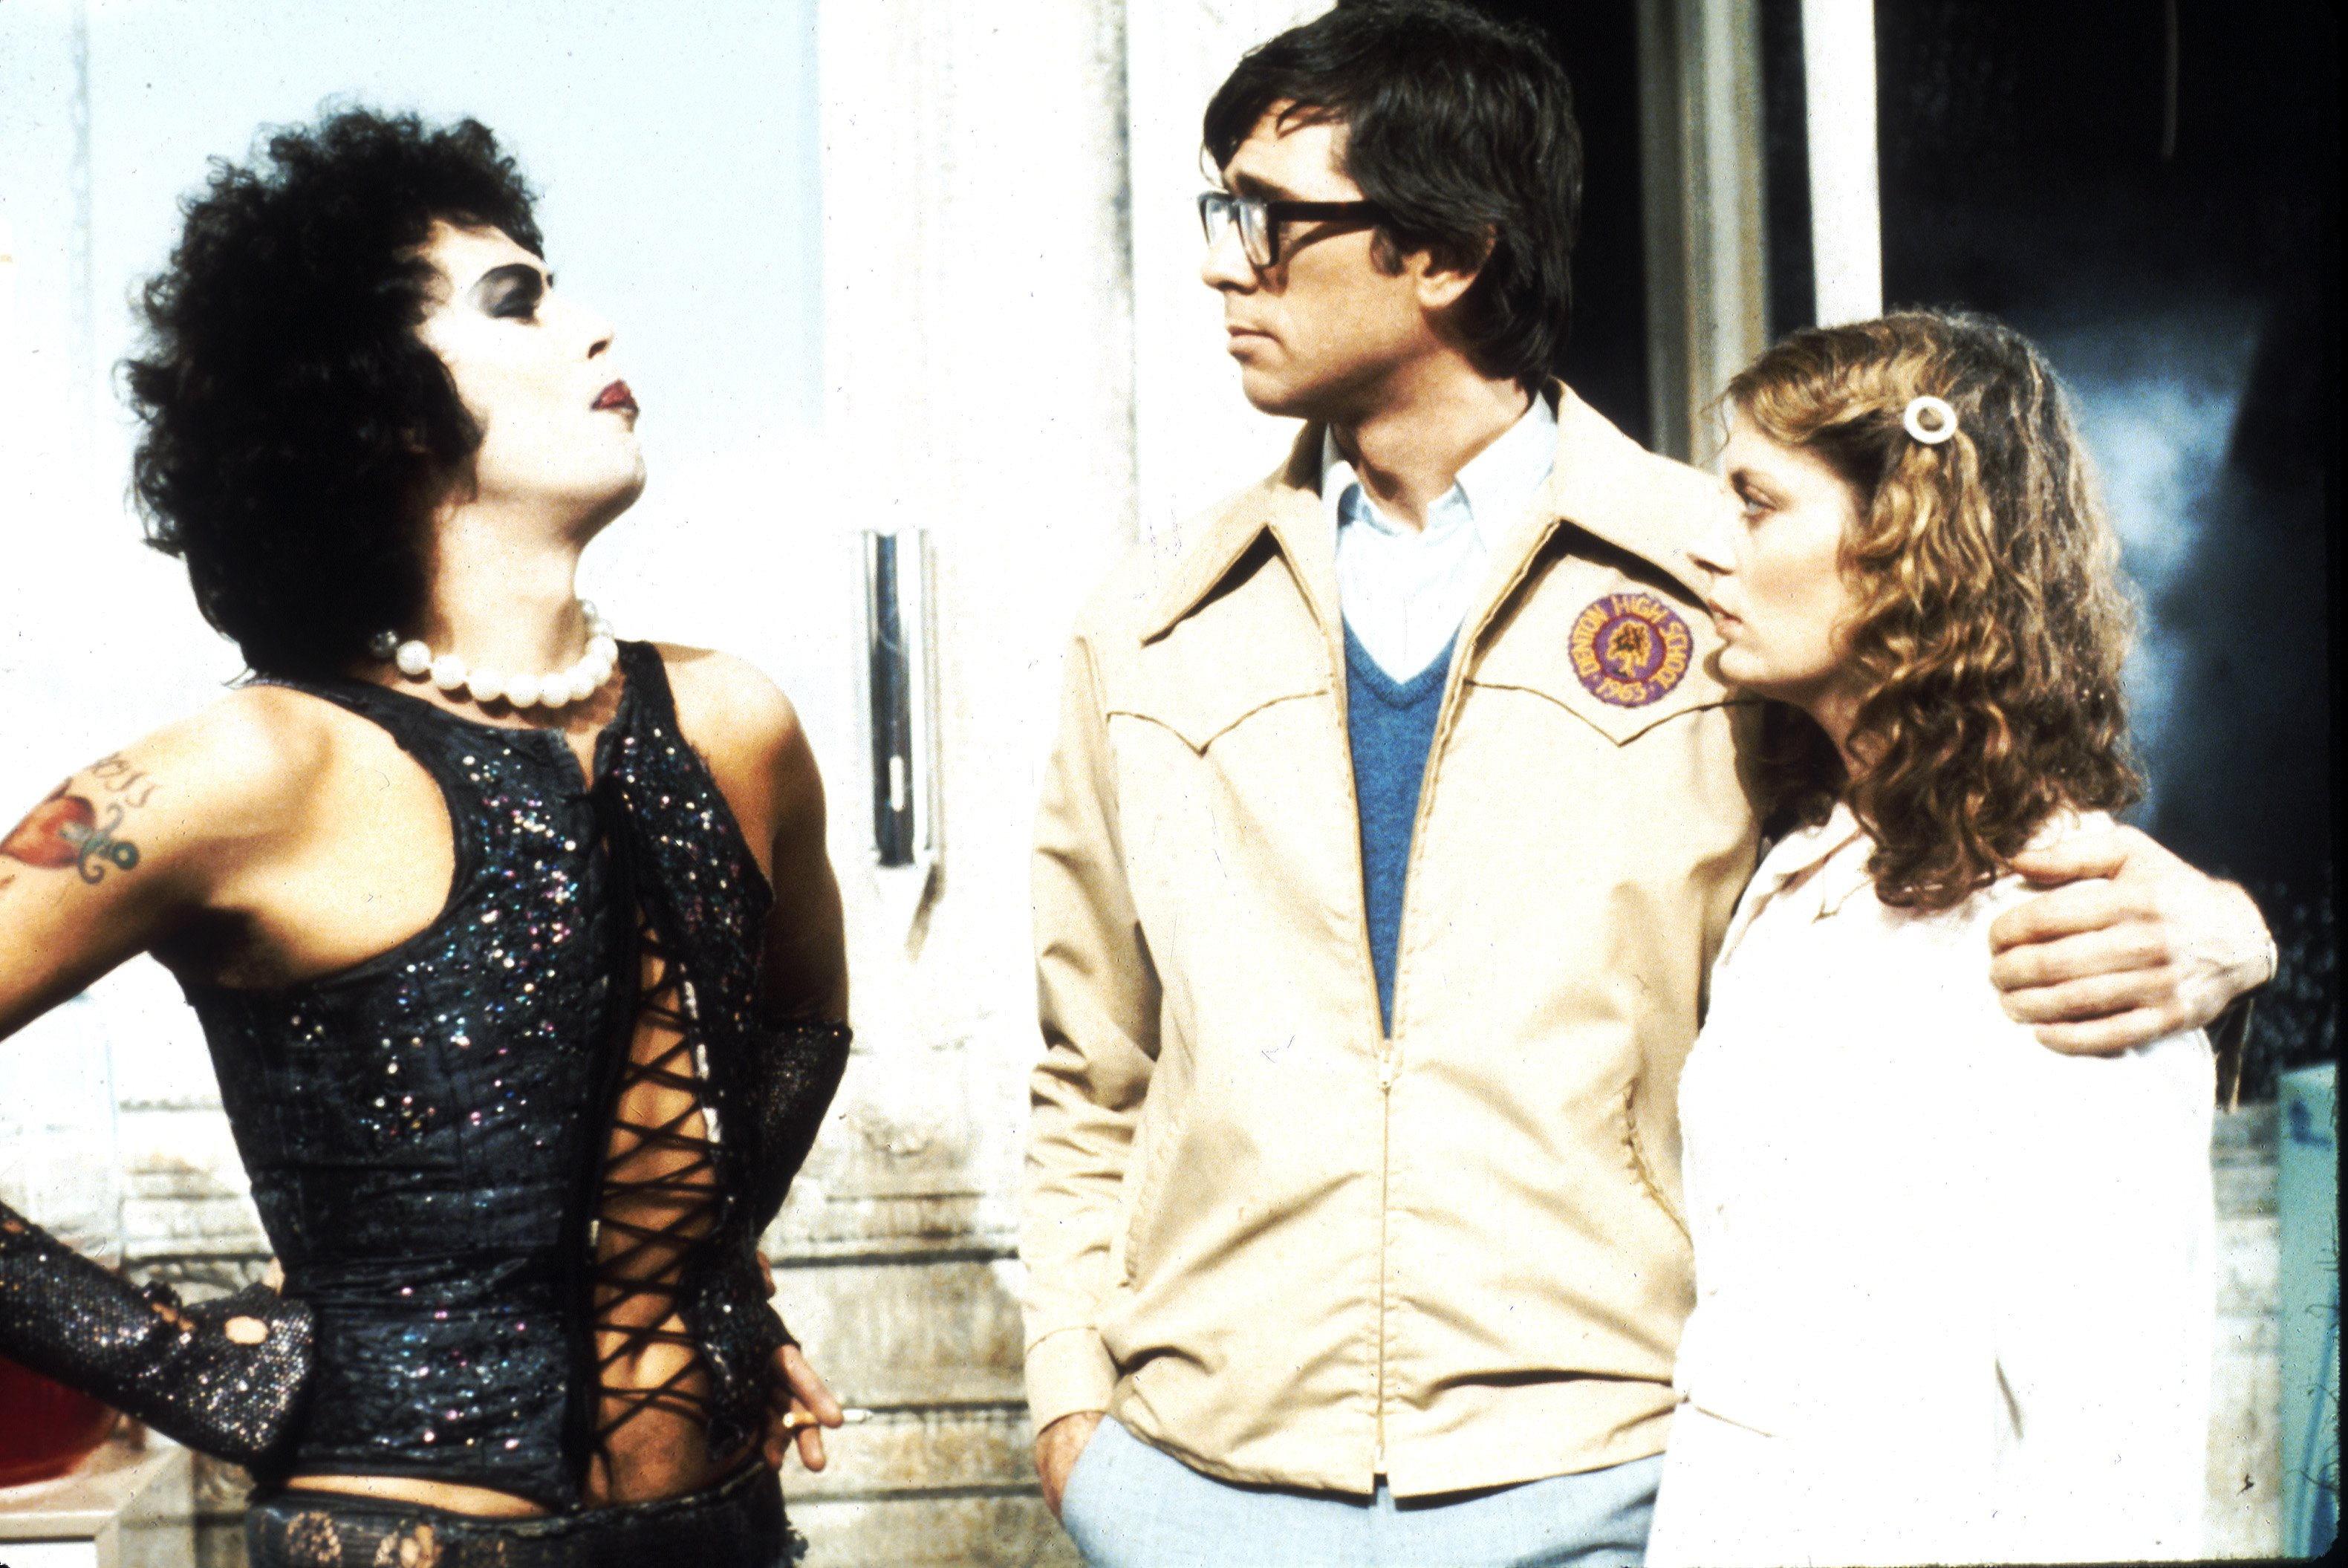 1975: Actors Tim Curry, Barry Bostwick and Susan Sarandon in scene from movie  The Rocky Horror Picture Show  directed by Jim Sharman.